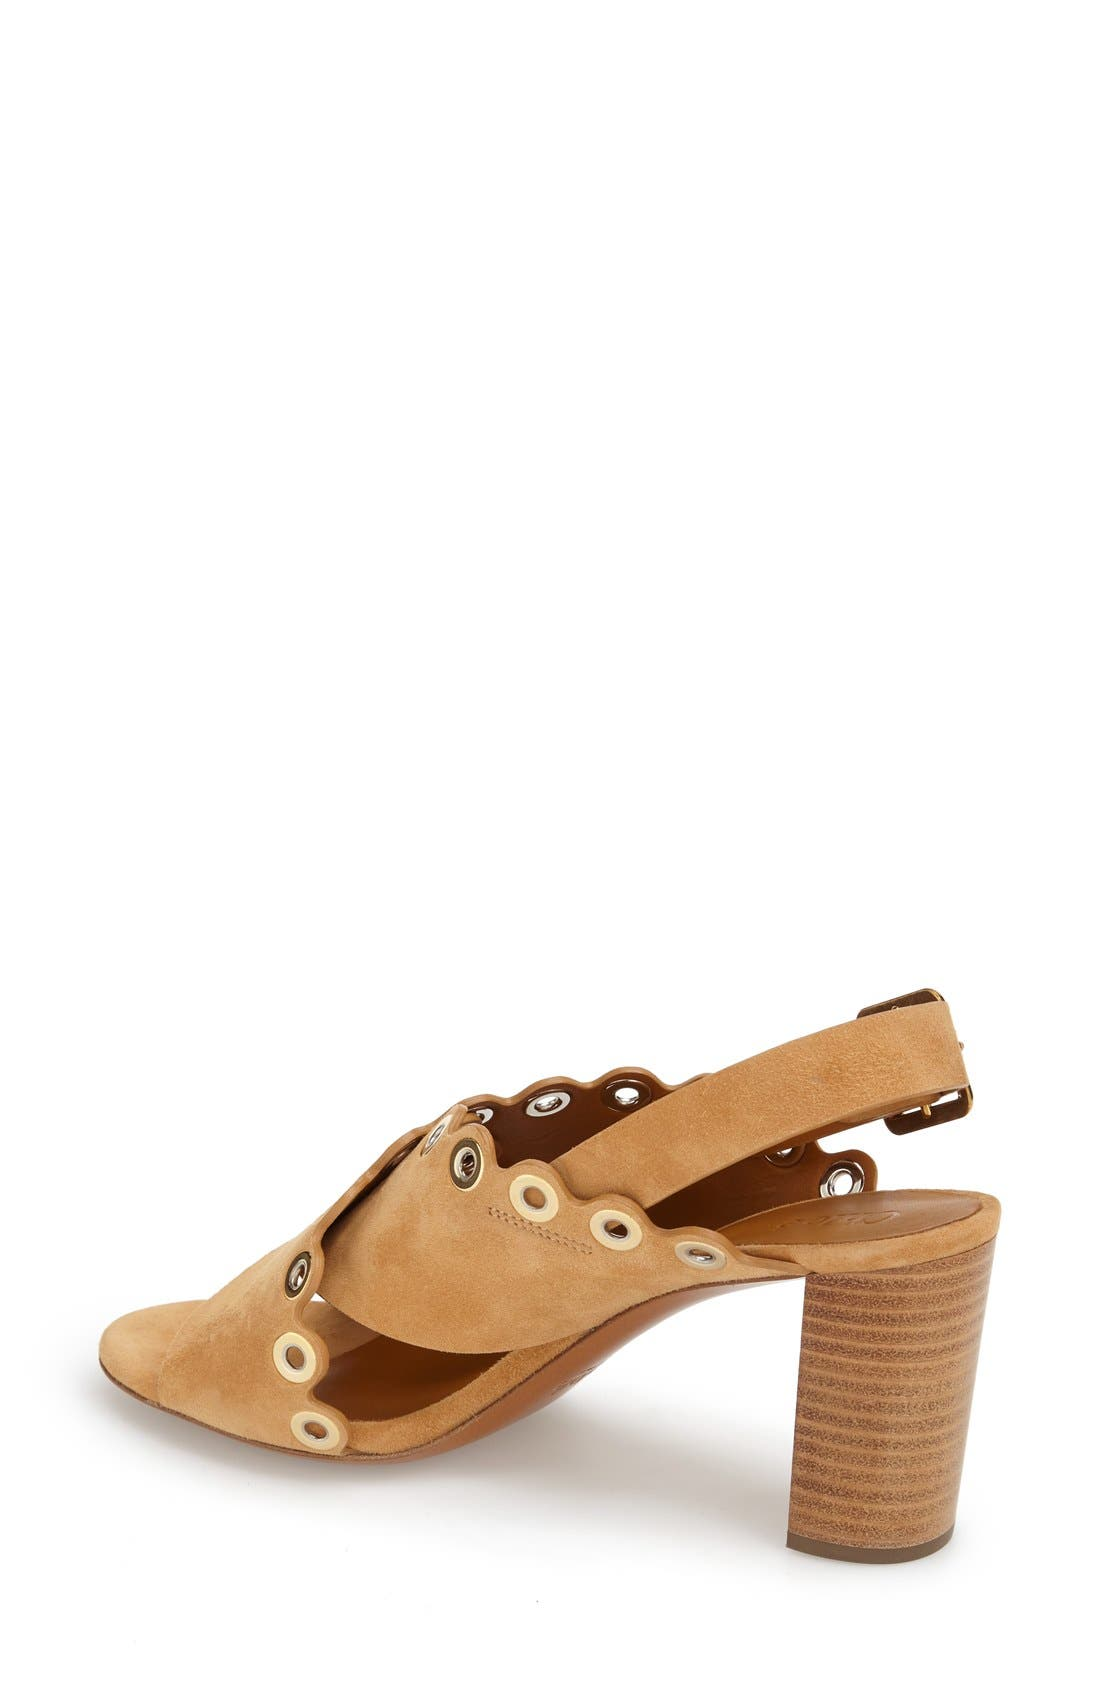 'Flo' Sandal,                             Alternate thumbnail 2, color,                             Beige Suede